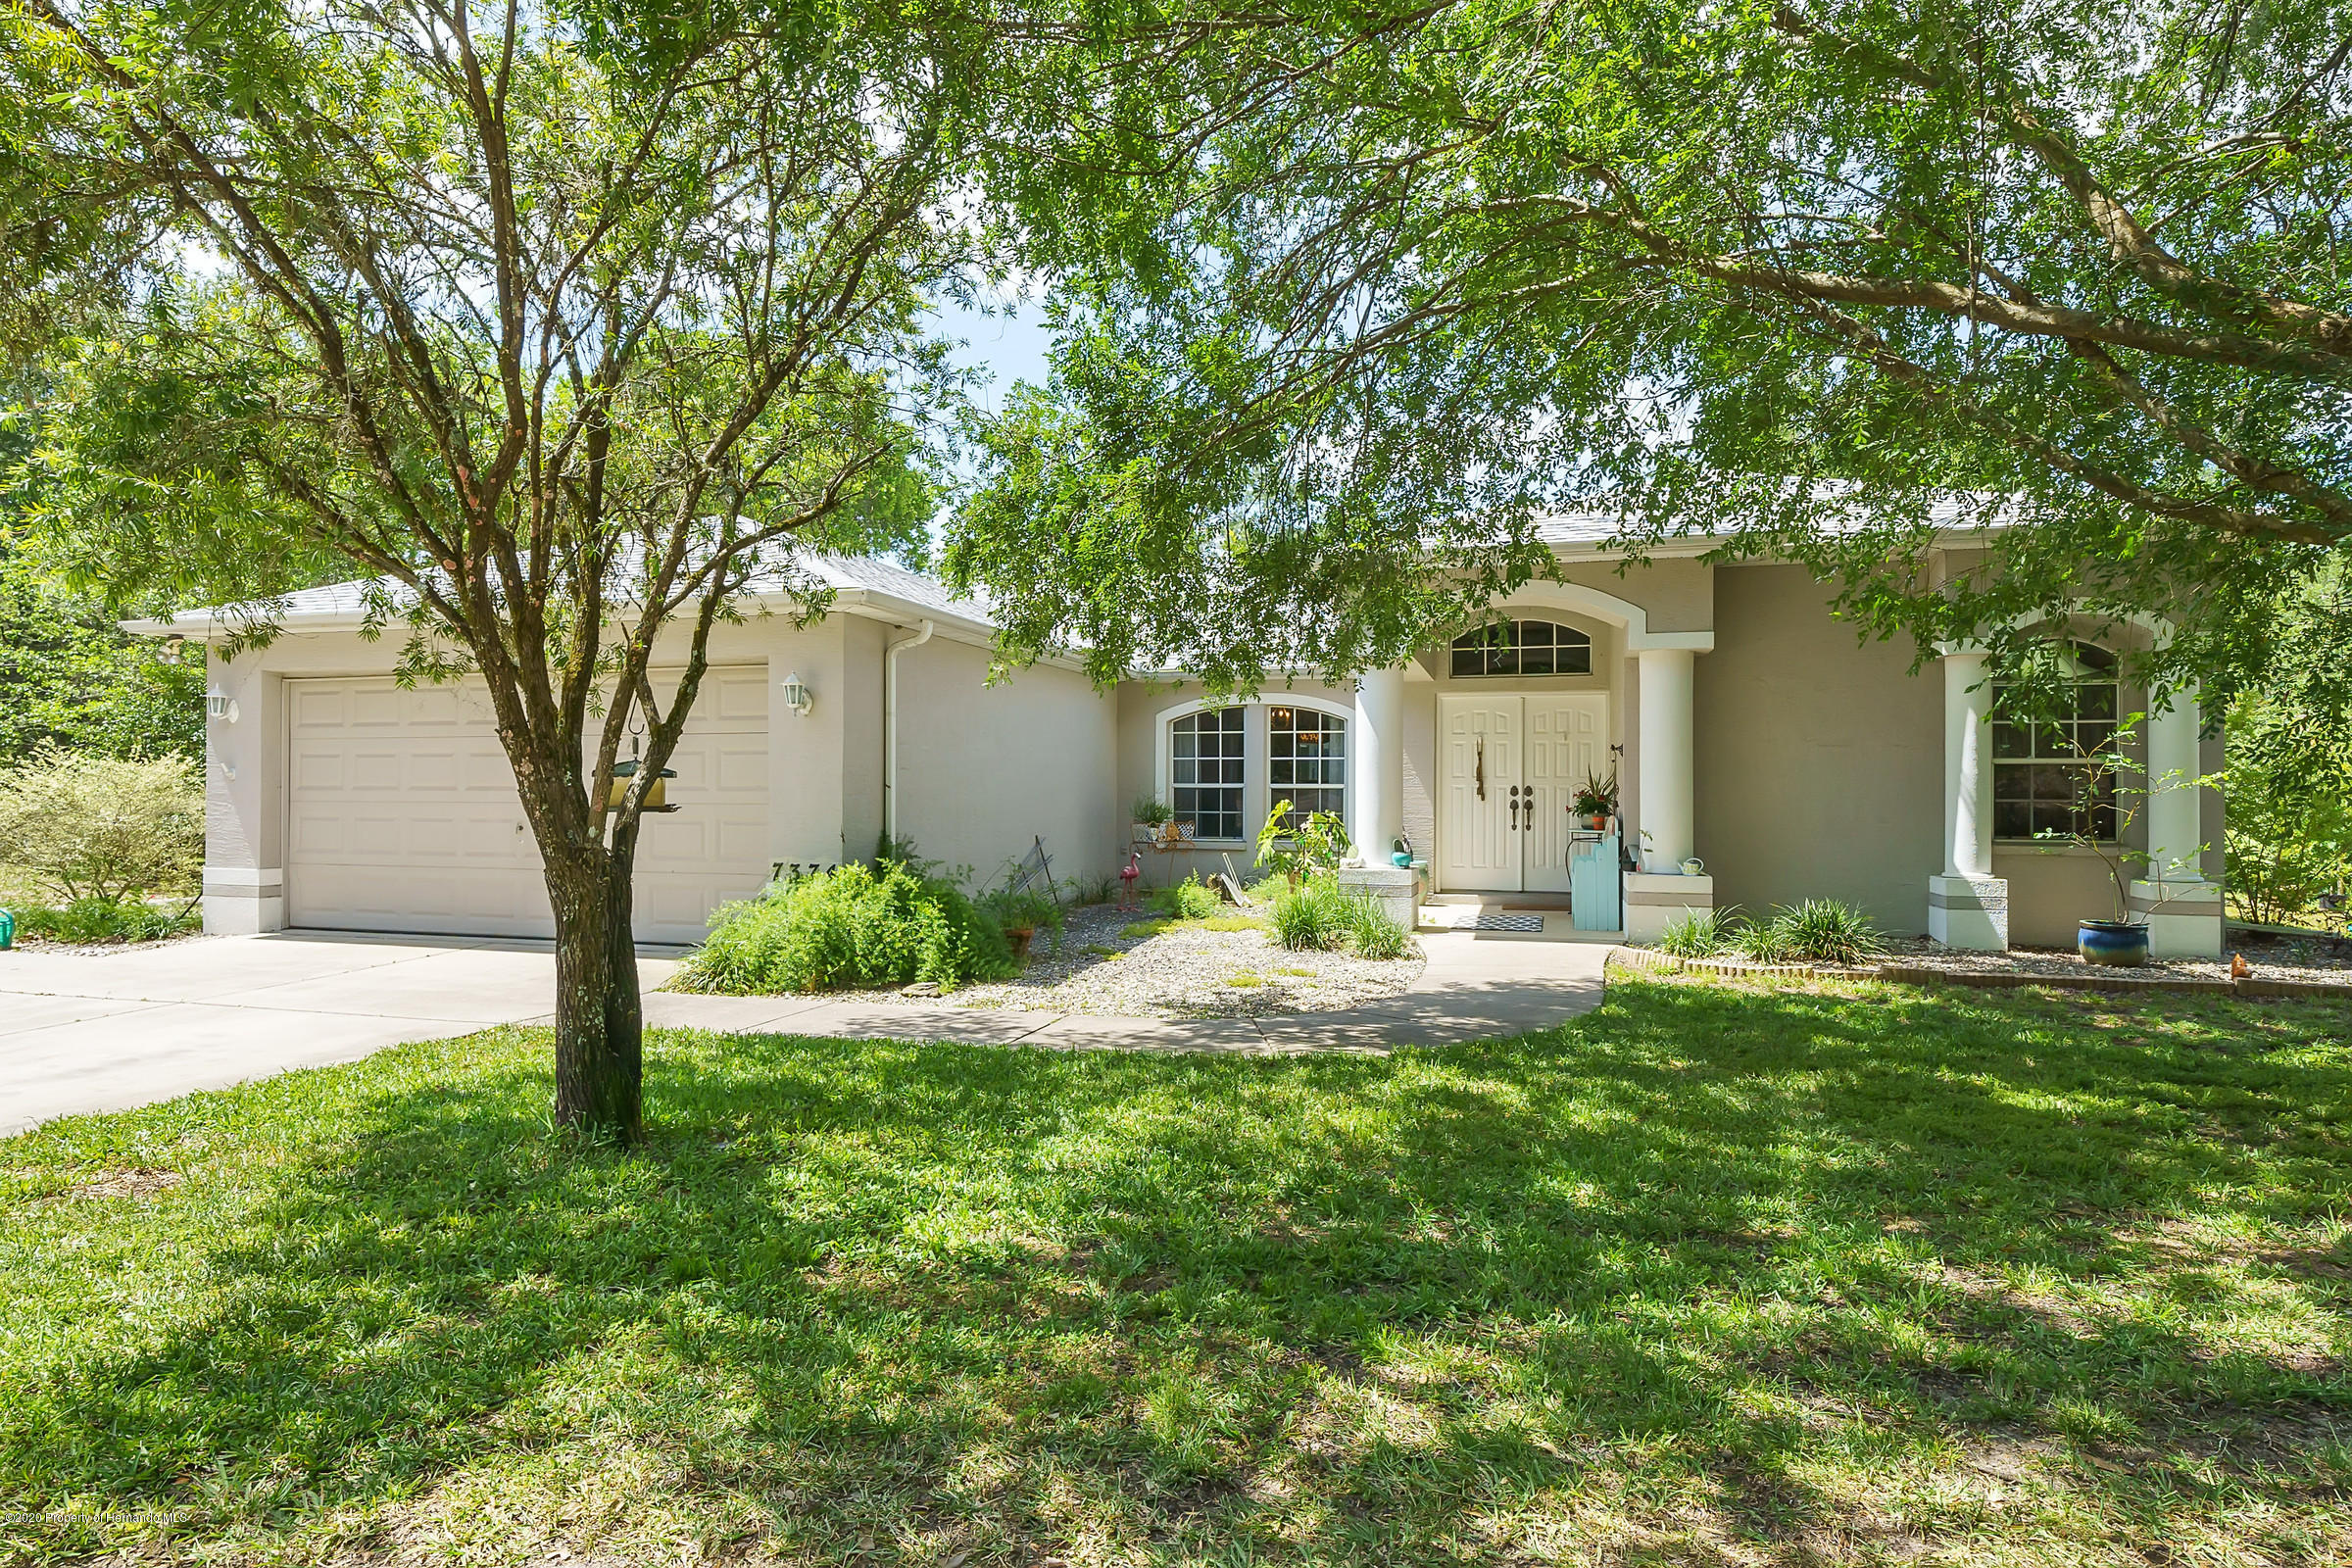 7374 E Shadywoods Court, Floral City, FL 34436